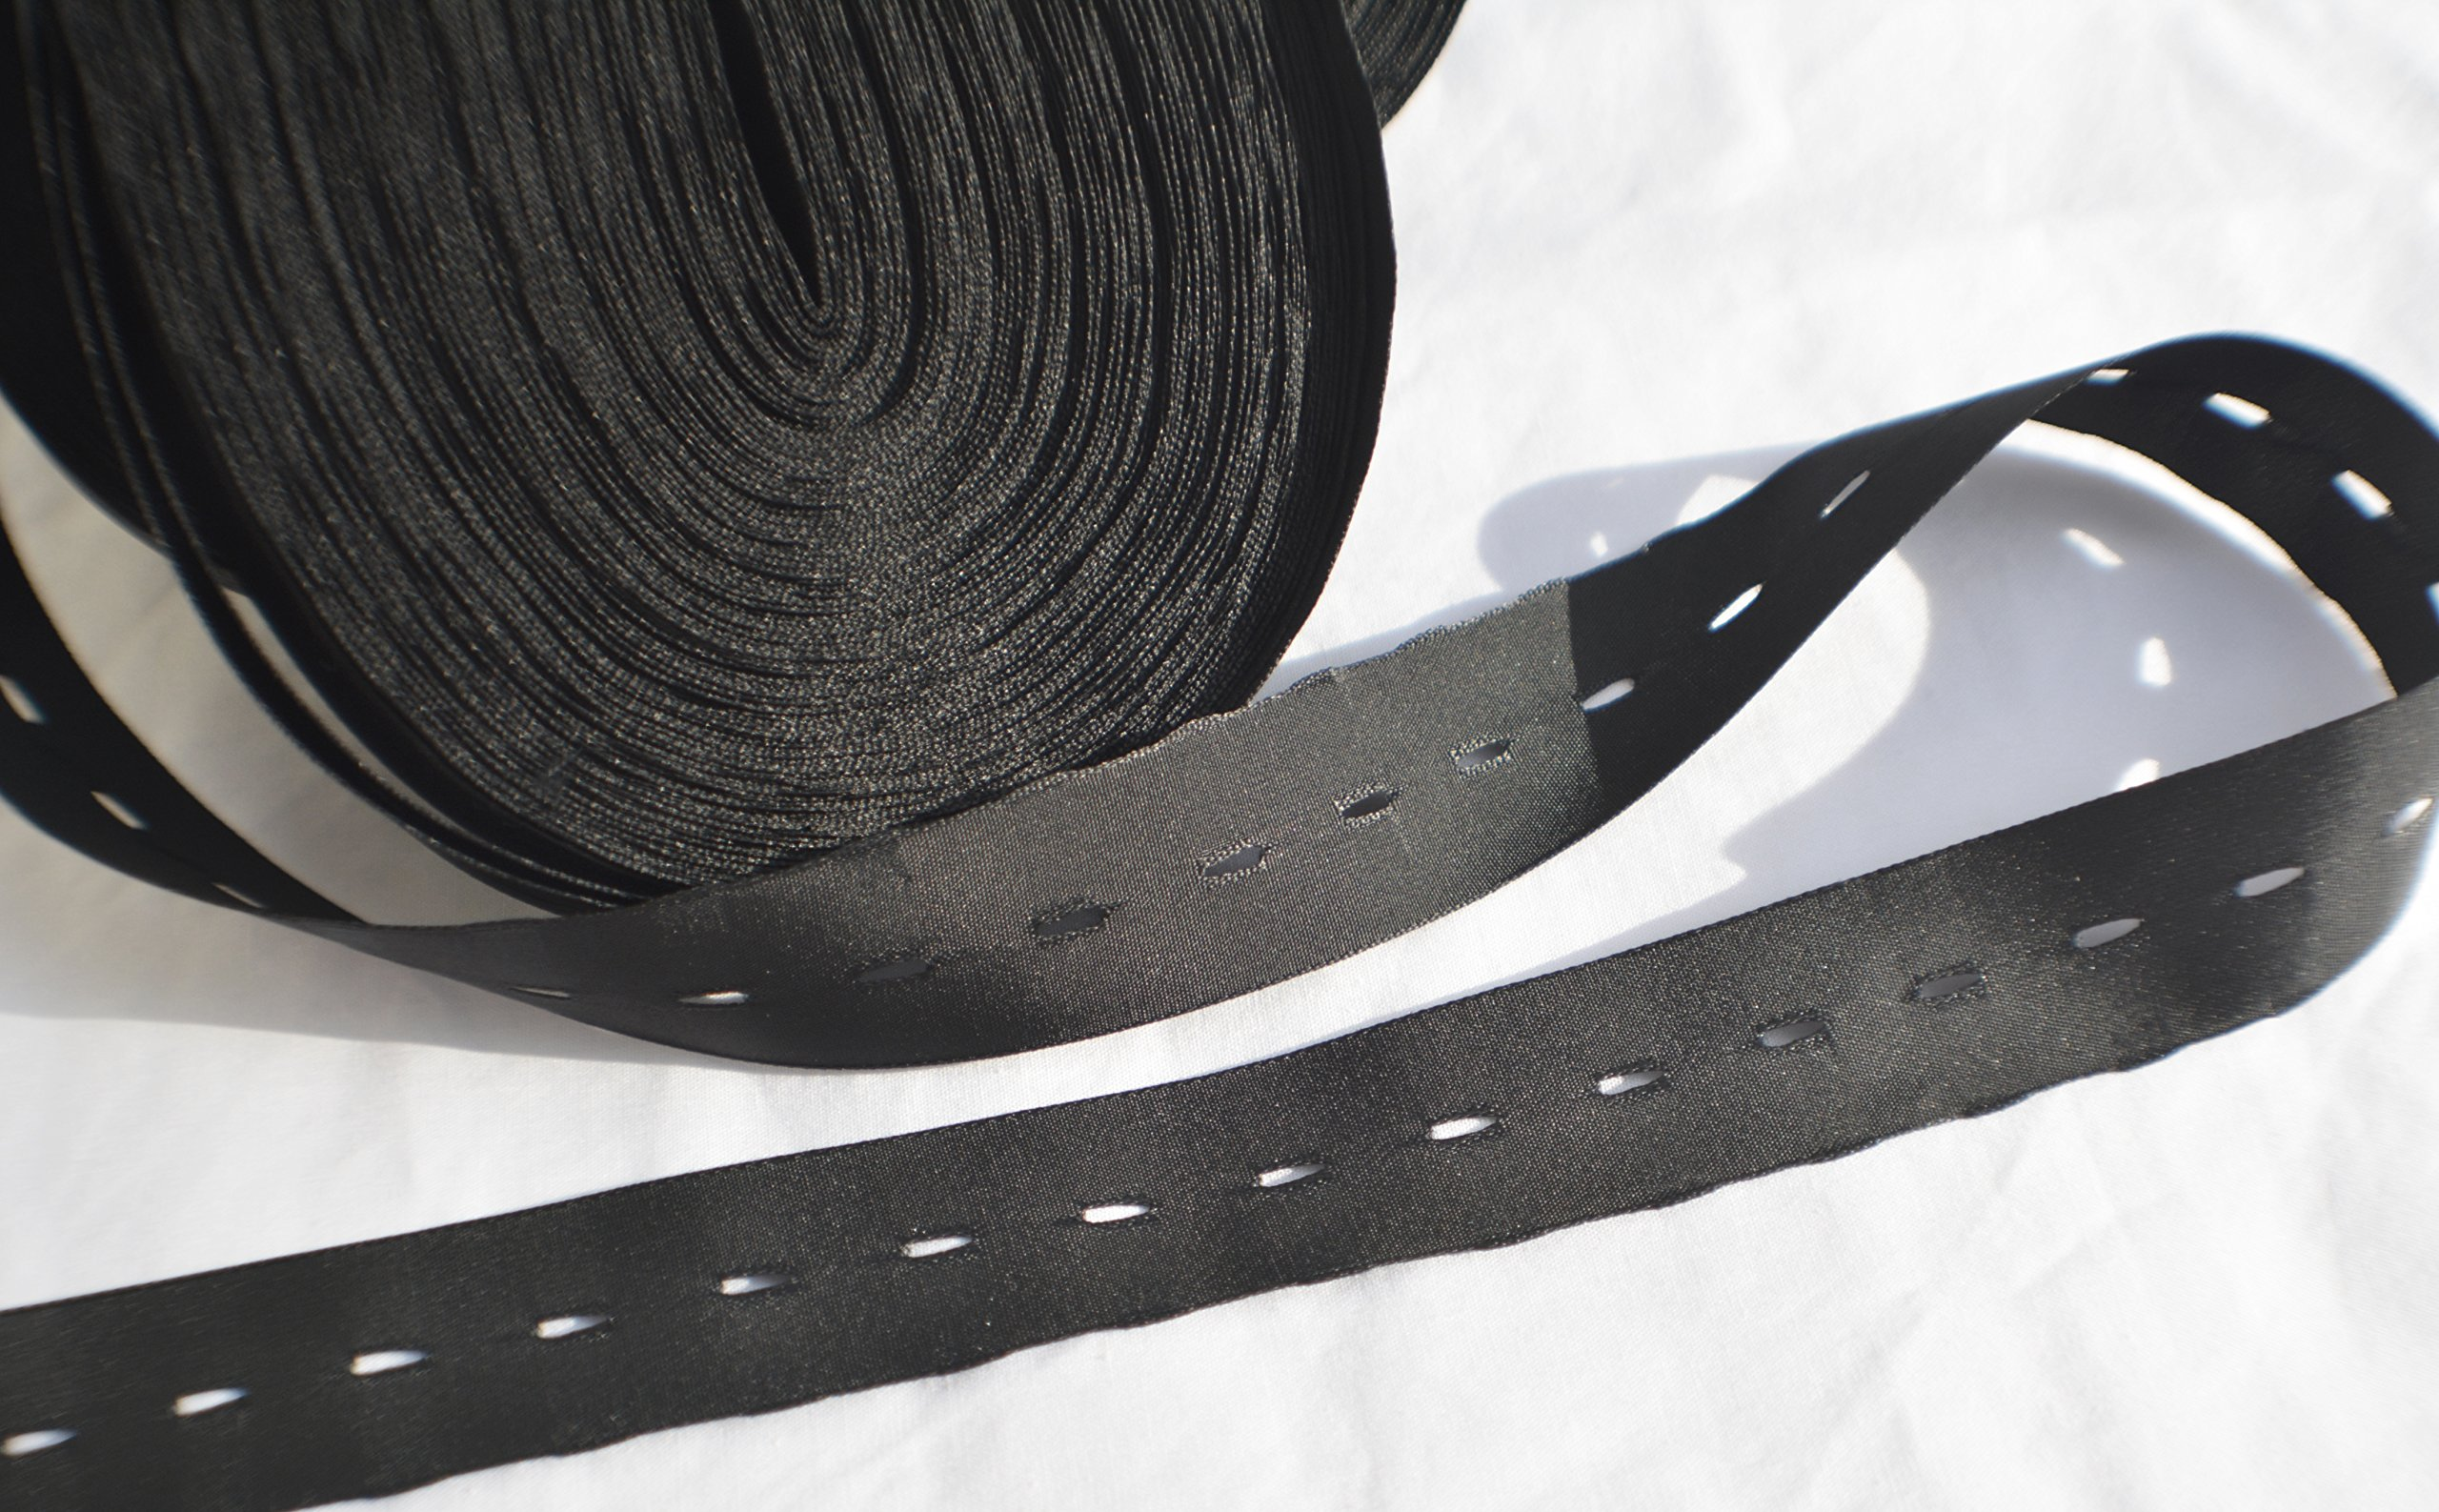 20mm (3/4'') SILK BOW TIE SIZE ADJUSTMENT RIBBONS with Hardware (Eye and T-hook) - choose 25 / 50 / 100 yards (25 Yards + 75 sets/hardware) by Thackery Handmade